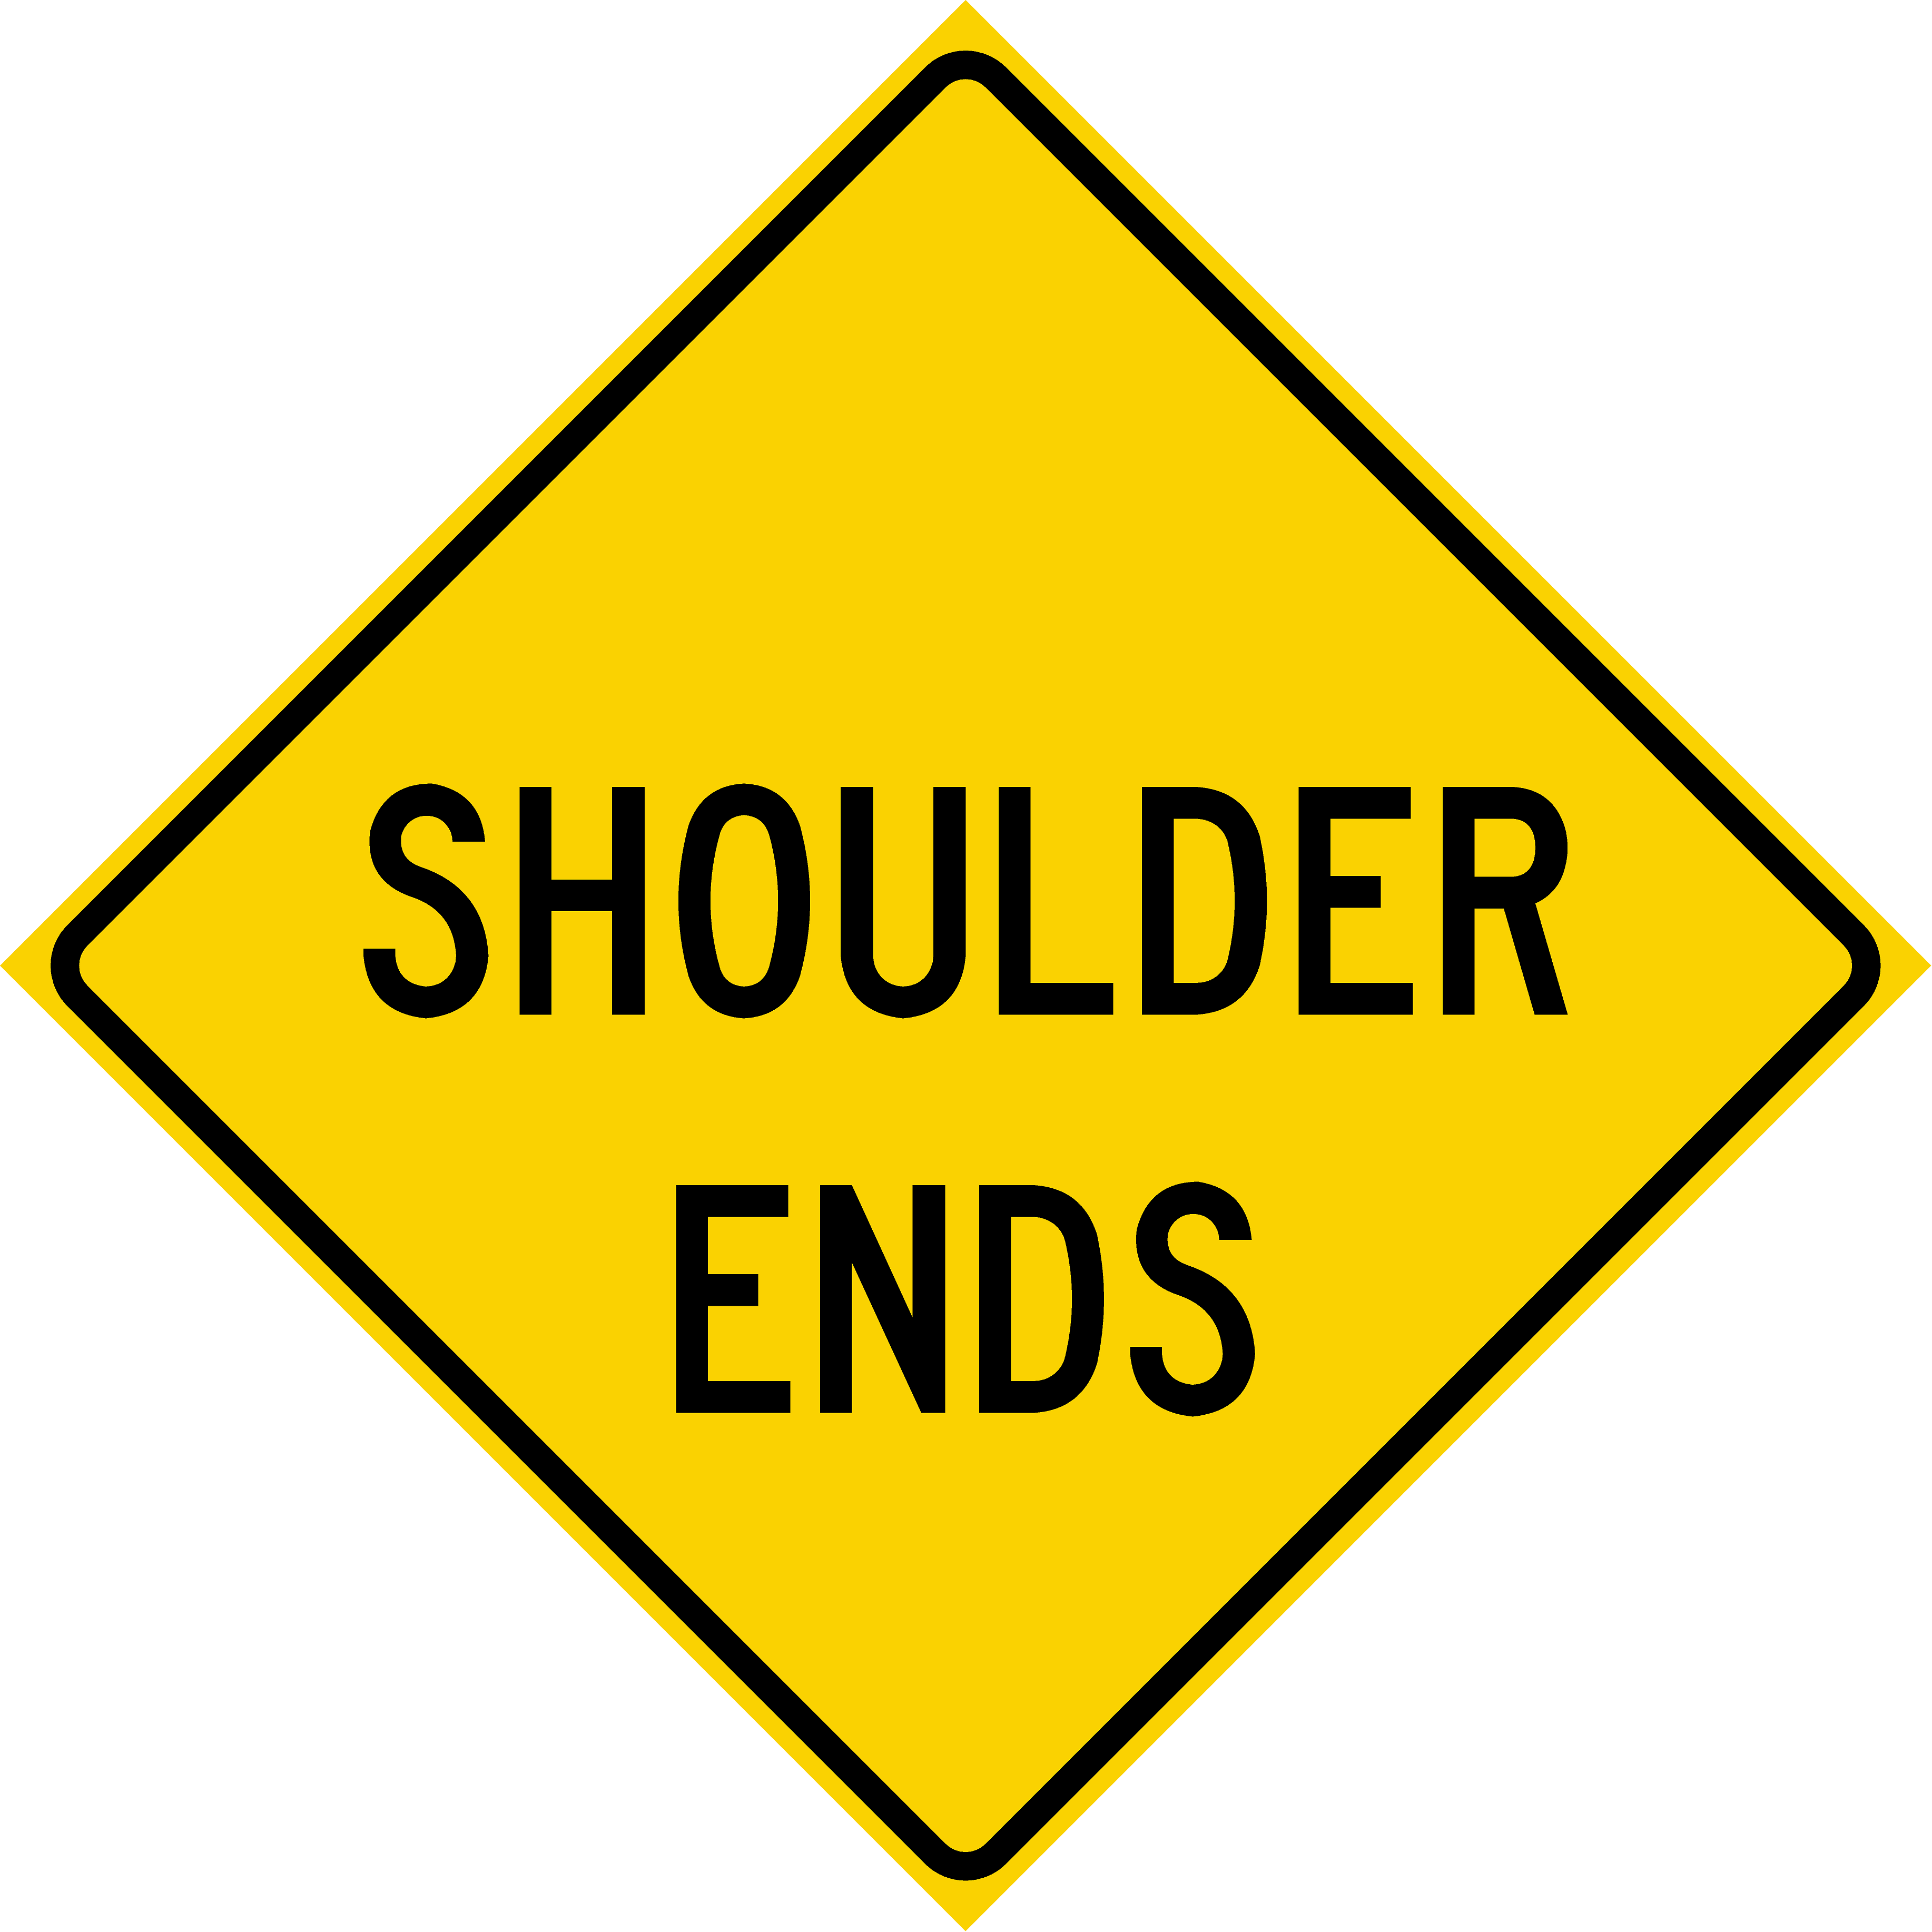 Shoulder Ends (W8-25)